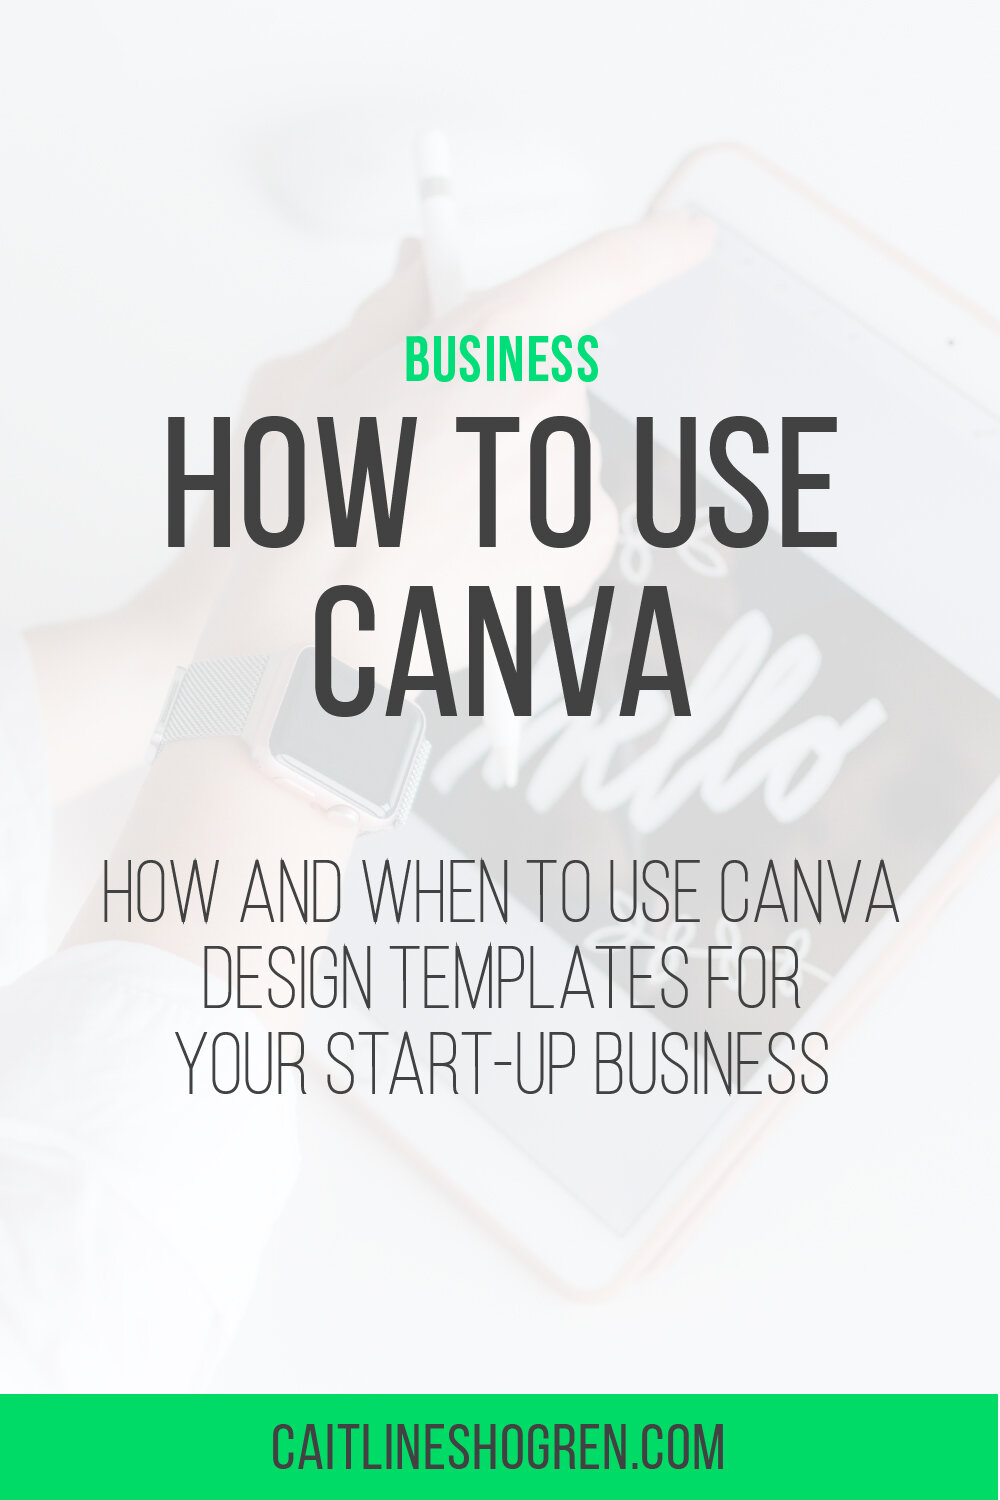 how-to-use-canva2.jpg